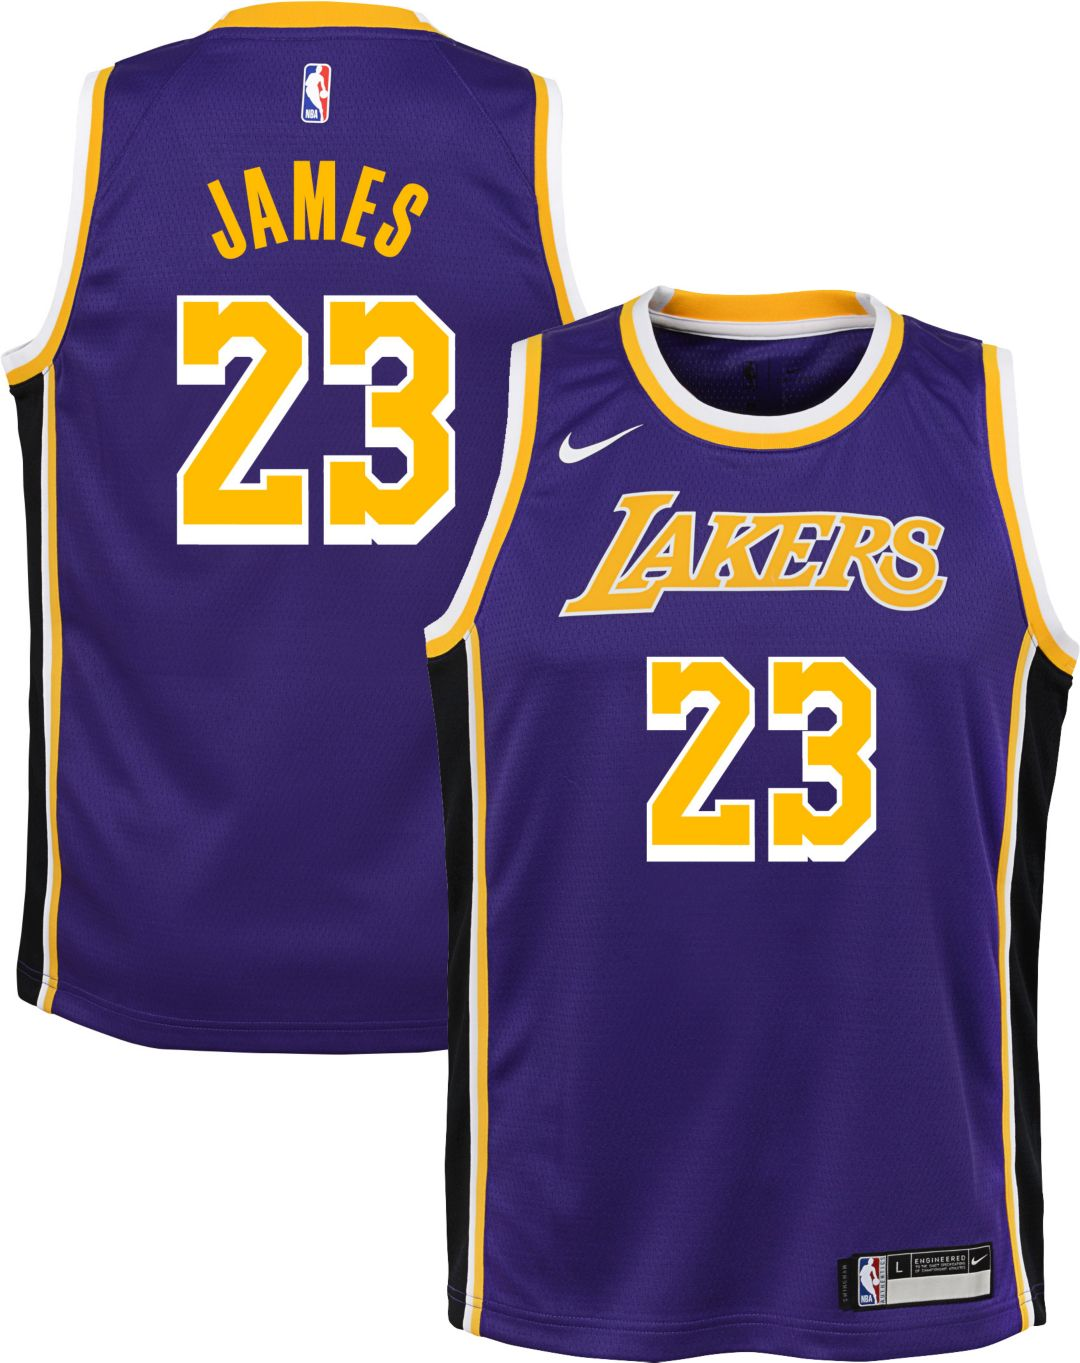 more photos c8934 191b2 Nike Youth Los Angeles Lakers LeBron James Dri-FIT Purple Swingman Jersey